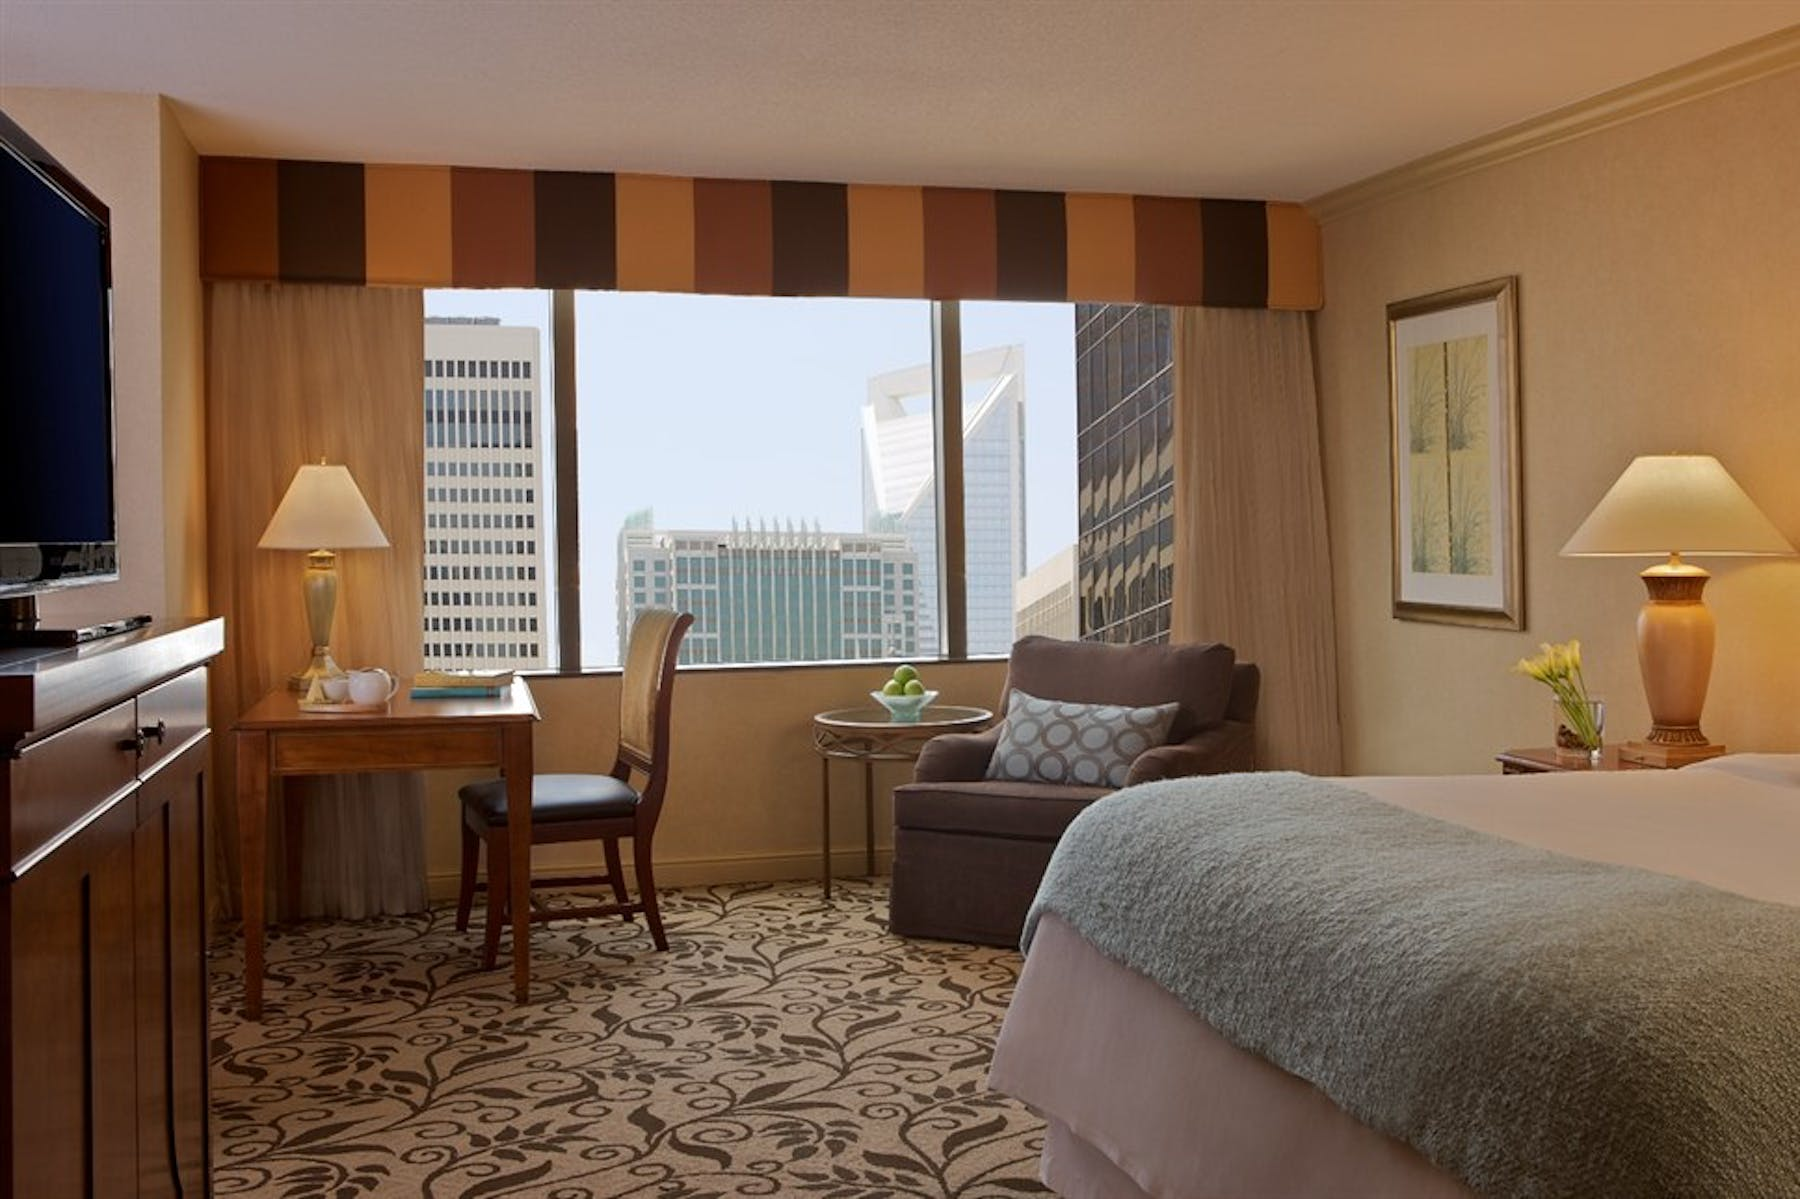 Omni Charlotte (Charlotte) The Carolinas - Prices from £0